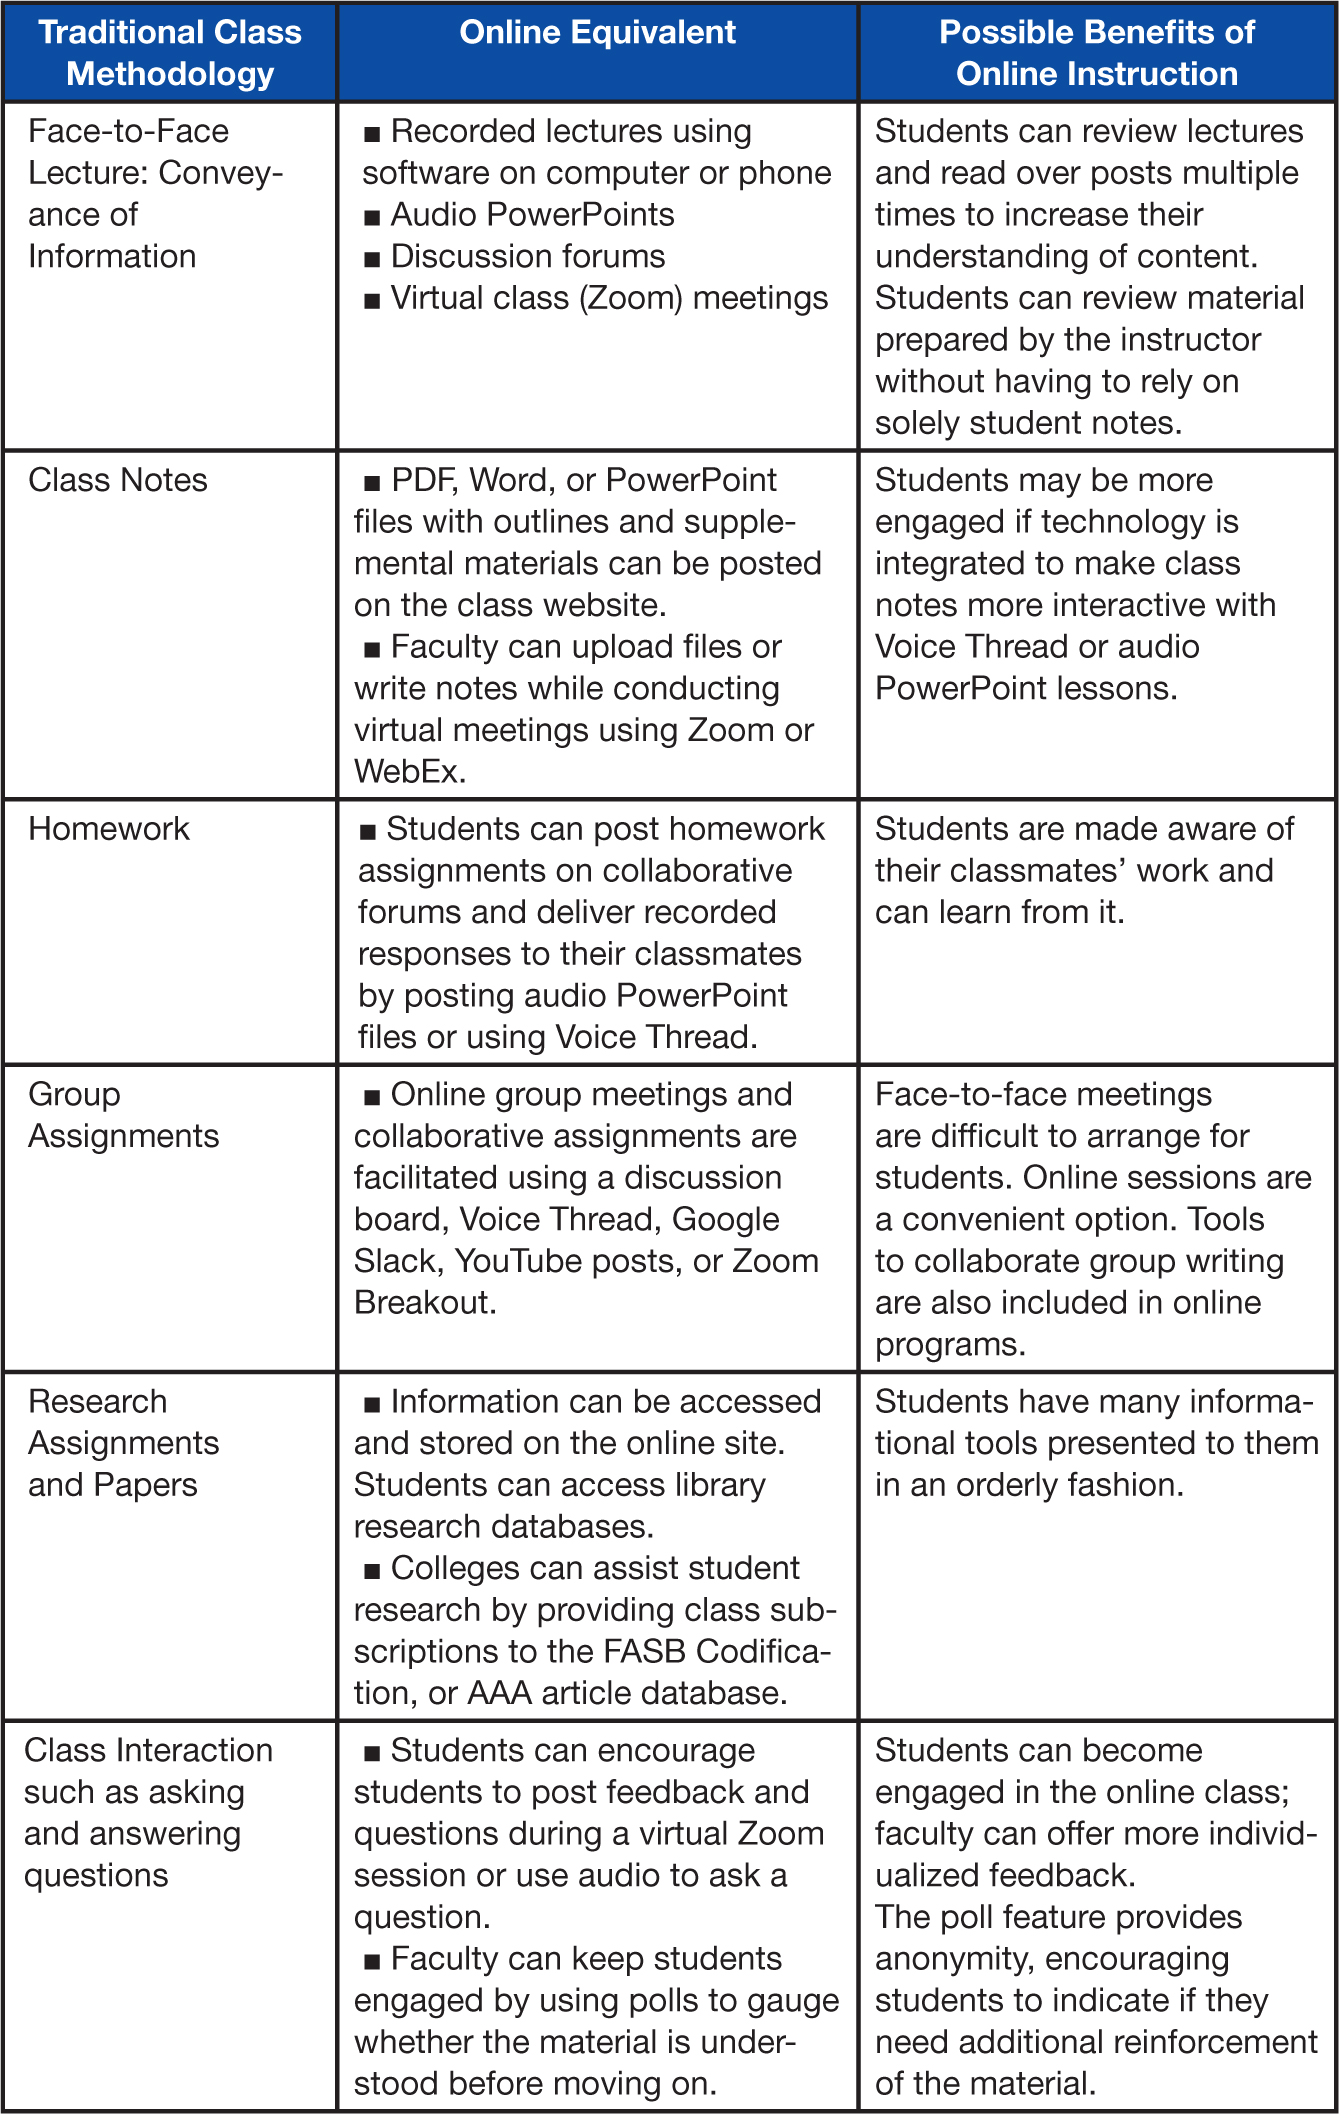 Traditional Class Methodology Online Equivalent Possible Benefits of Online Instruction Face-to-Face Lecture: Conveyance of Information Recorded lectures using software on computer or phone Audio PowerPoints Discussion forums Virtual class (Zoom) meetings Students can review lectures and read over posts multiple times to increase their understanding of content. Students can review material prepared by the instructor without having to rely on solely student notes. Class Notes PDF, Word, or PowerPoint files with outlines and supplemental materials can be posted on the class website. Faculty can upload files or write notes while conducting virtual meetings using Zoom or WebEx. Students may be more engaged if technology is integrated to make class notes more interactive with Voice Thread or audio PowerPoint lessons. Homework Students can post homework assignments on collaborative forums and deliver recorded responses to their classmates by posting audio PowerPoint files or using Voice Thread. Students are made aware of their classmates' work and can learn from it. Group Assignments Online group meetings and collaborative assignments are facilitated using a discussion board, Voice Thread, Google Slack, YouTube posts, or Zoom Breakout. Face-to-face meetings are difficult to arrange for students. Online sessions are a convenient option. Tools to collaborate group writing are also included in online programs. Research Assignments and Papers Information can be accessed and stored on the online site. Students can access library research databases. Colleges can assist student research by providing class subscriptions to the FASB Codification, or AAA article database. Students have many informational tools presented to them in an orderly fashion. Class Interaction such as asking and answering questions Students can encourage students to post feedback and questions during a virtual Zoom session or use audio to ask a question. Faculty can keep students engaged by using polls to g